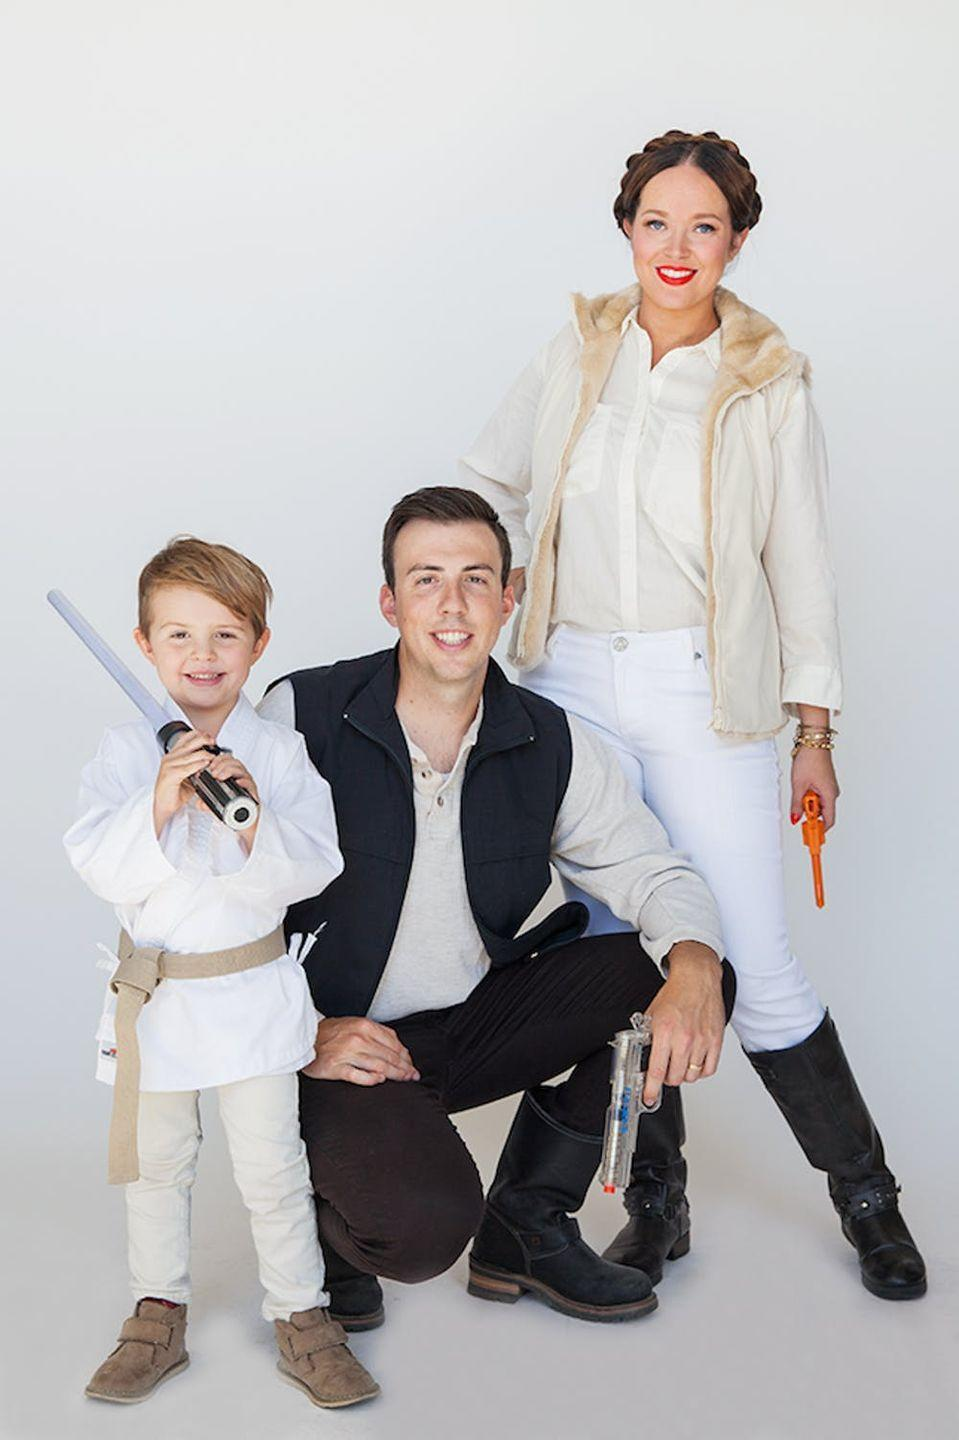 """<p>The whole family can use the force to make these cute costumes. </p><p><strong>Get the tutorial at <a href=""""http://sayyes.com/2015/09/halloween-family-costumes-star-wars"""" rel=""""nofollow noopener"""" target=""""_blank"""" data-ylk=""""slk:Say Yes"""" class=""""link rapid-noclick-resp"""">Say Yes</a>.</strong></p><p><strong><a class=""""link rapid-noclick-resp"""" href=""""https://www.amazon.com/YiZYiF-Martial-Middleweight-Breathe-Training/dp/B07BHNL9PN?tag=syn-yahoo-20&ascsubtag=%5Bartid%7C10050.g.21287723%5Bsrc%7Cyahoo-us"""" rel=""""nofollow noopener"""" target=""""_blank"""" data-ylk=""""slk:SHOP KARATE OUTFITS"""">SHOP KARATE OUTFITS</a></strong></p>"""